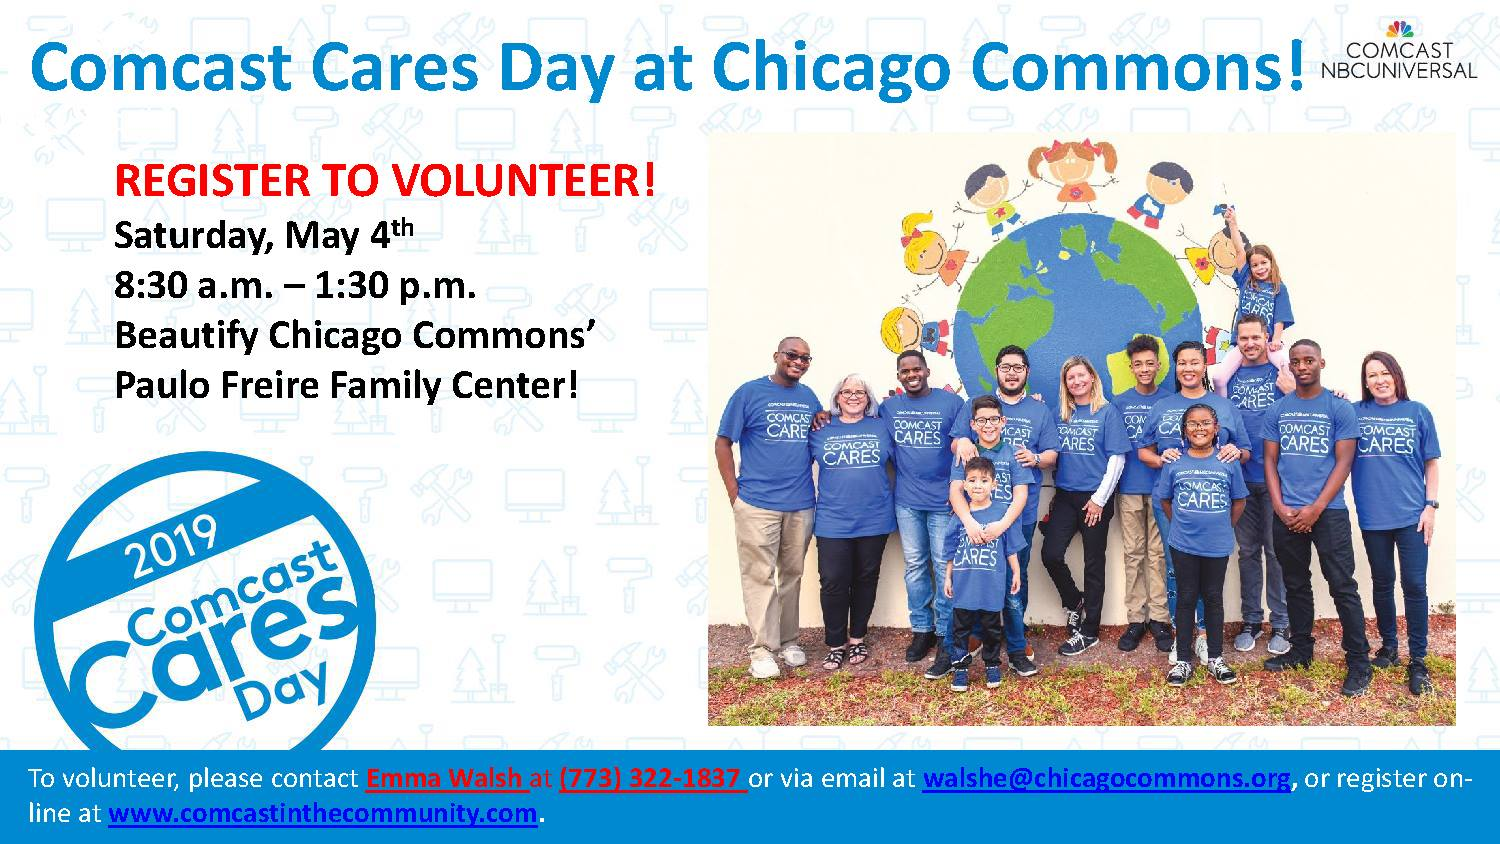 Chicago Commons: Comcast Cares Day - Chicago Commons